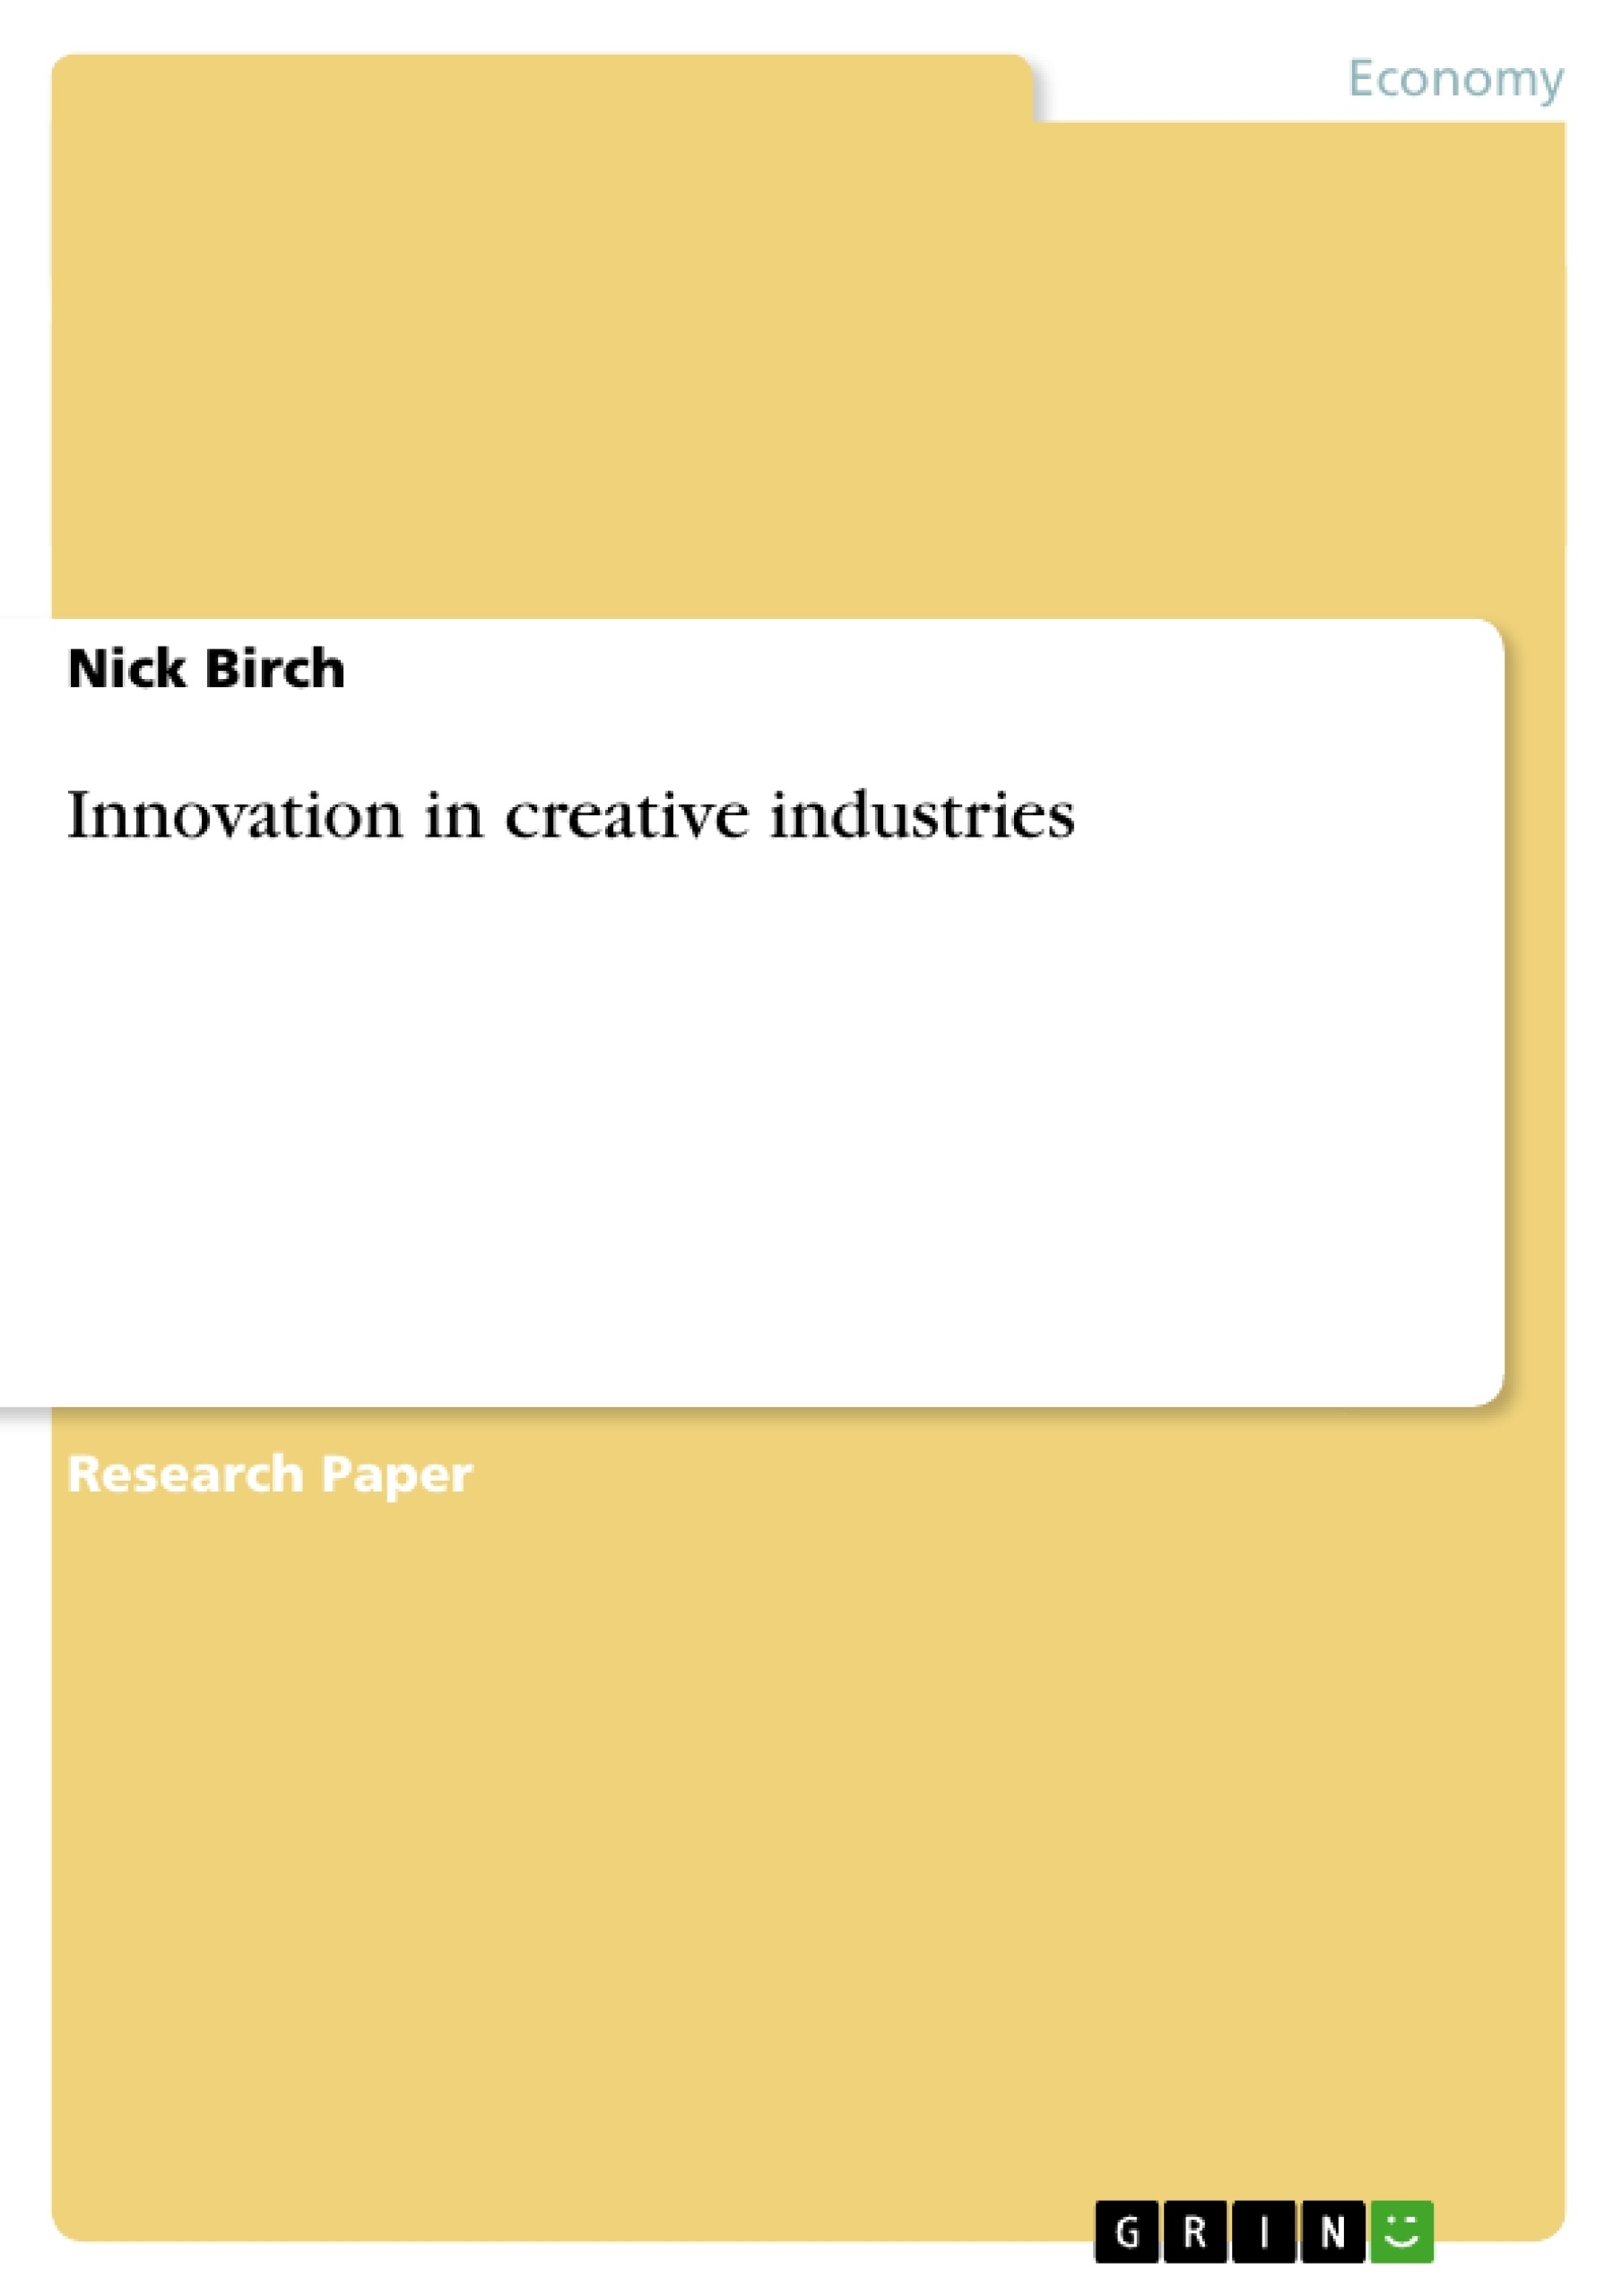 Title: Innovation in creative industries